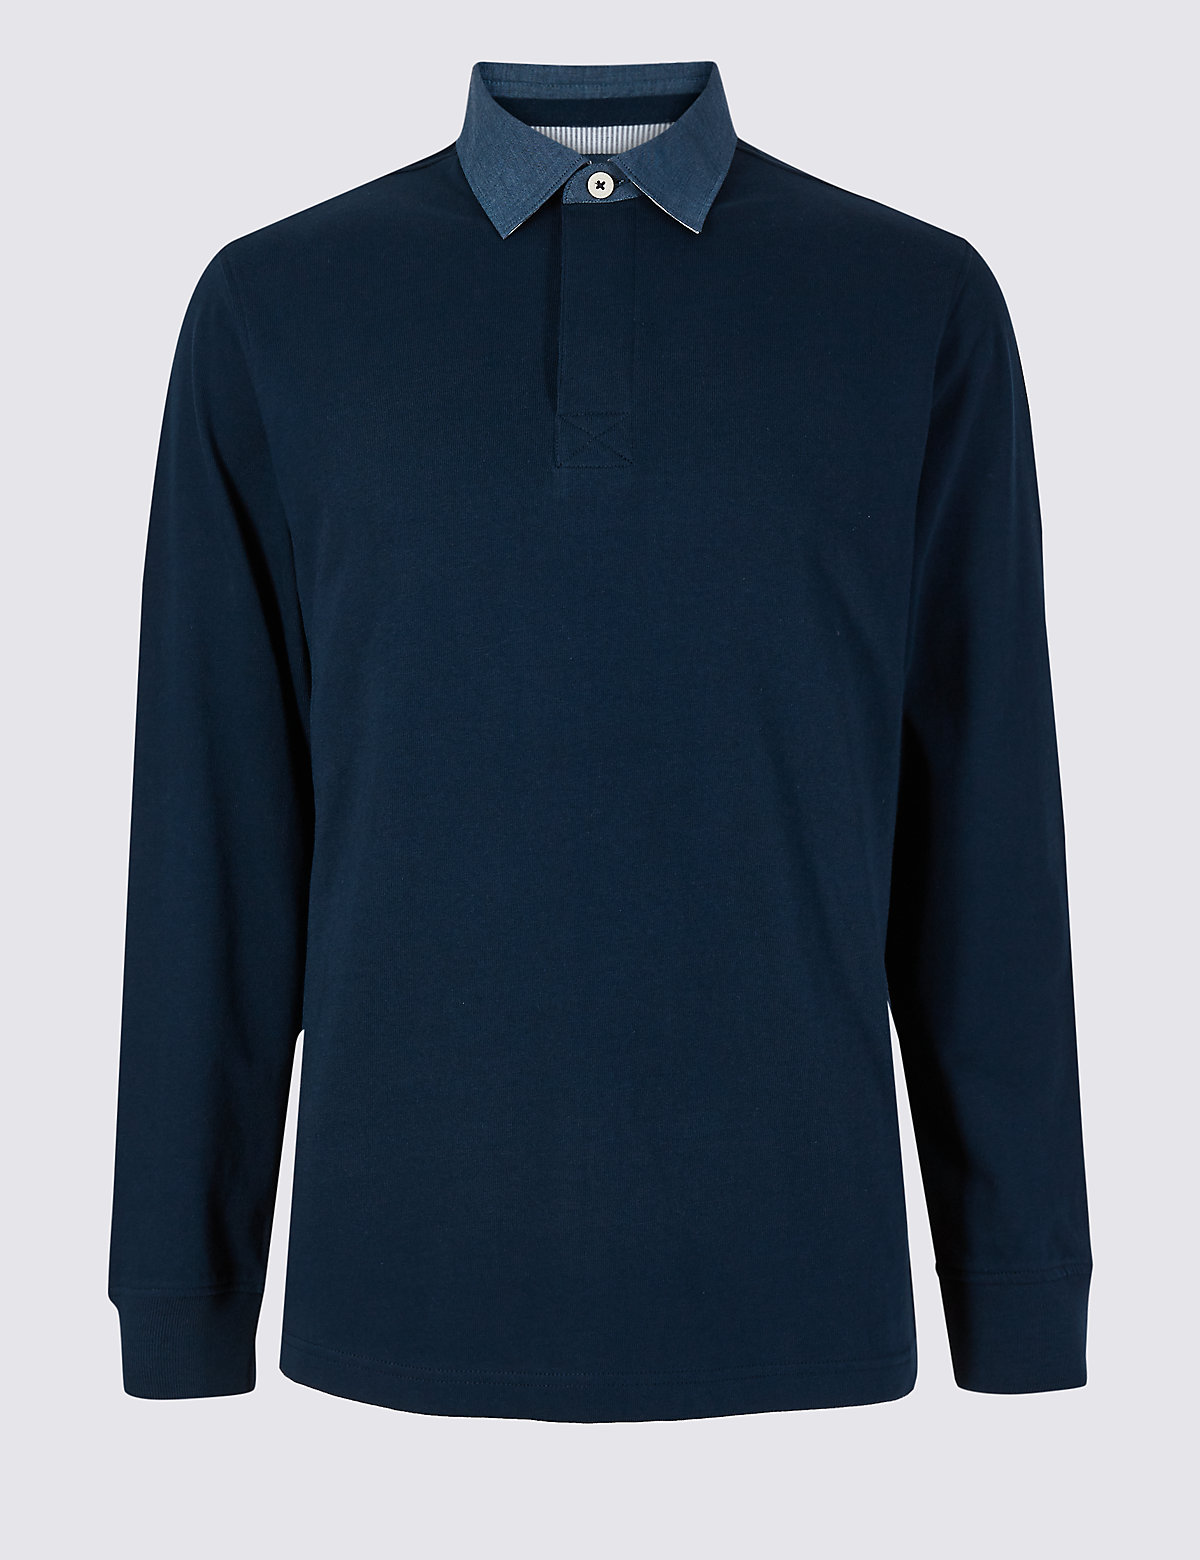 Marks & Spencer Navy Pure Cotton Rugby Top